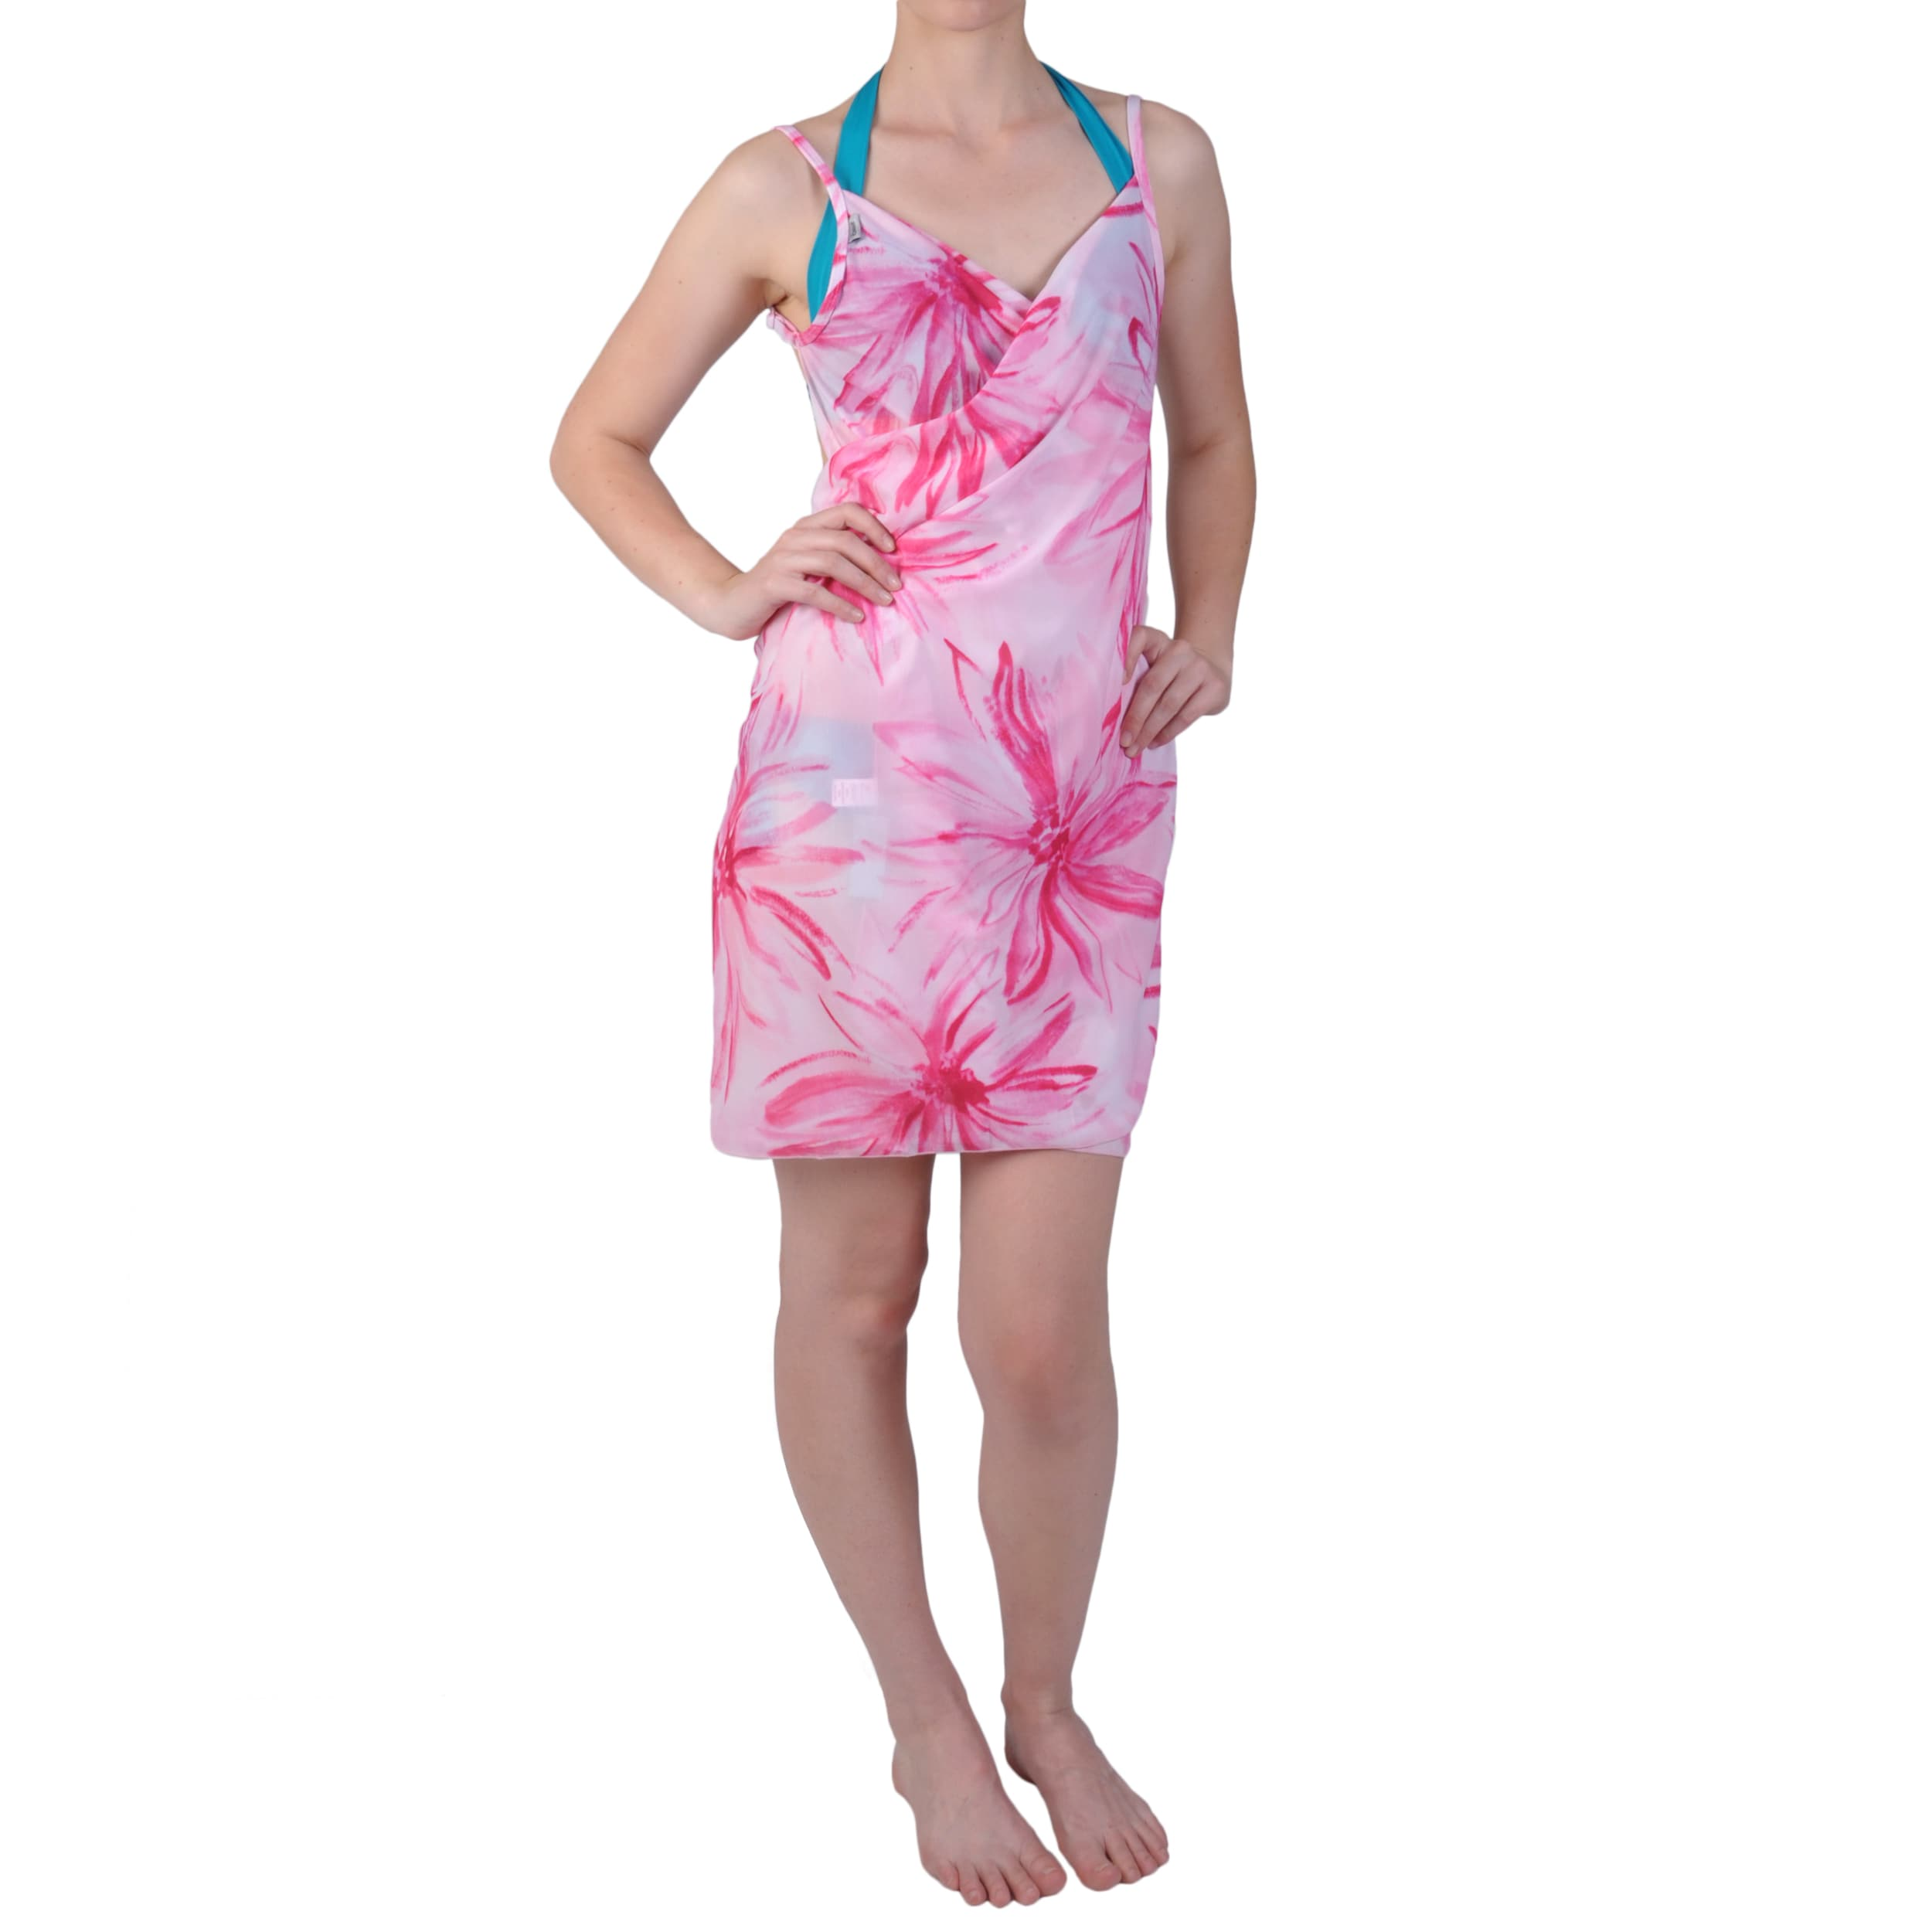 Saress Women's Casual Beach Wrap Dress with Floral Print